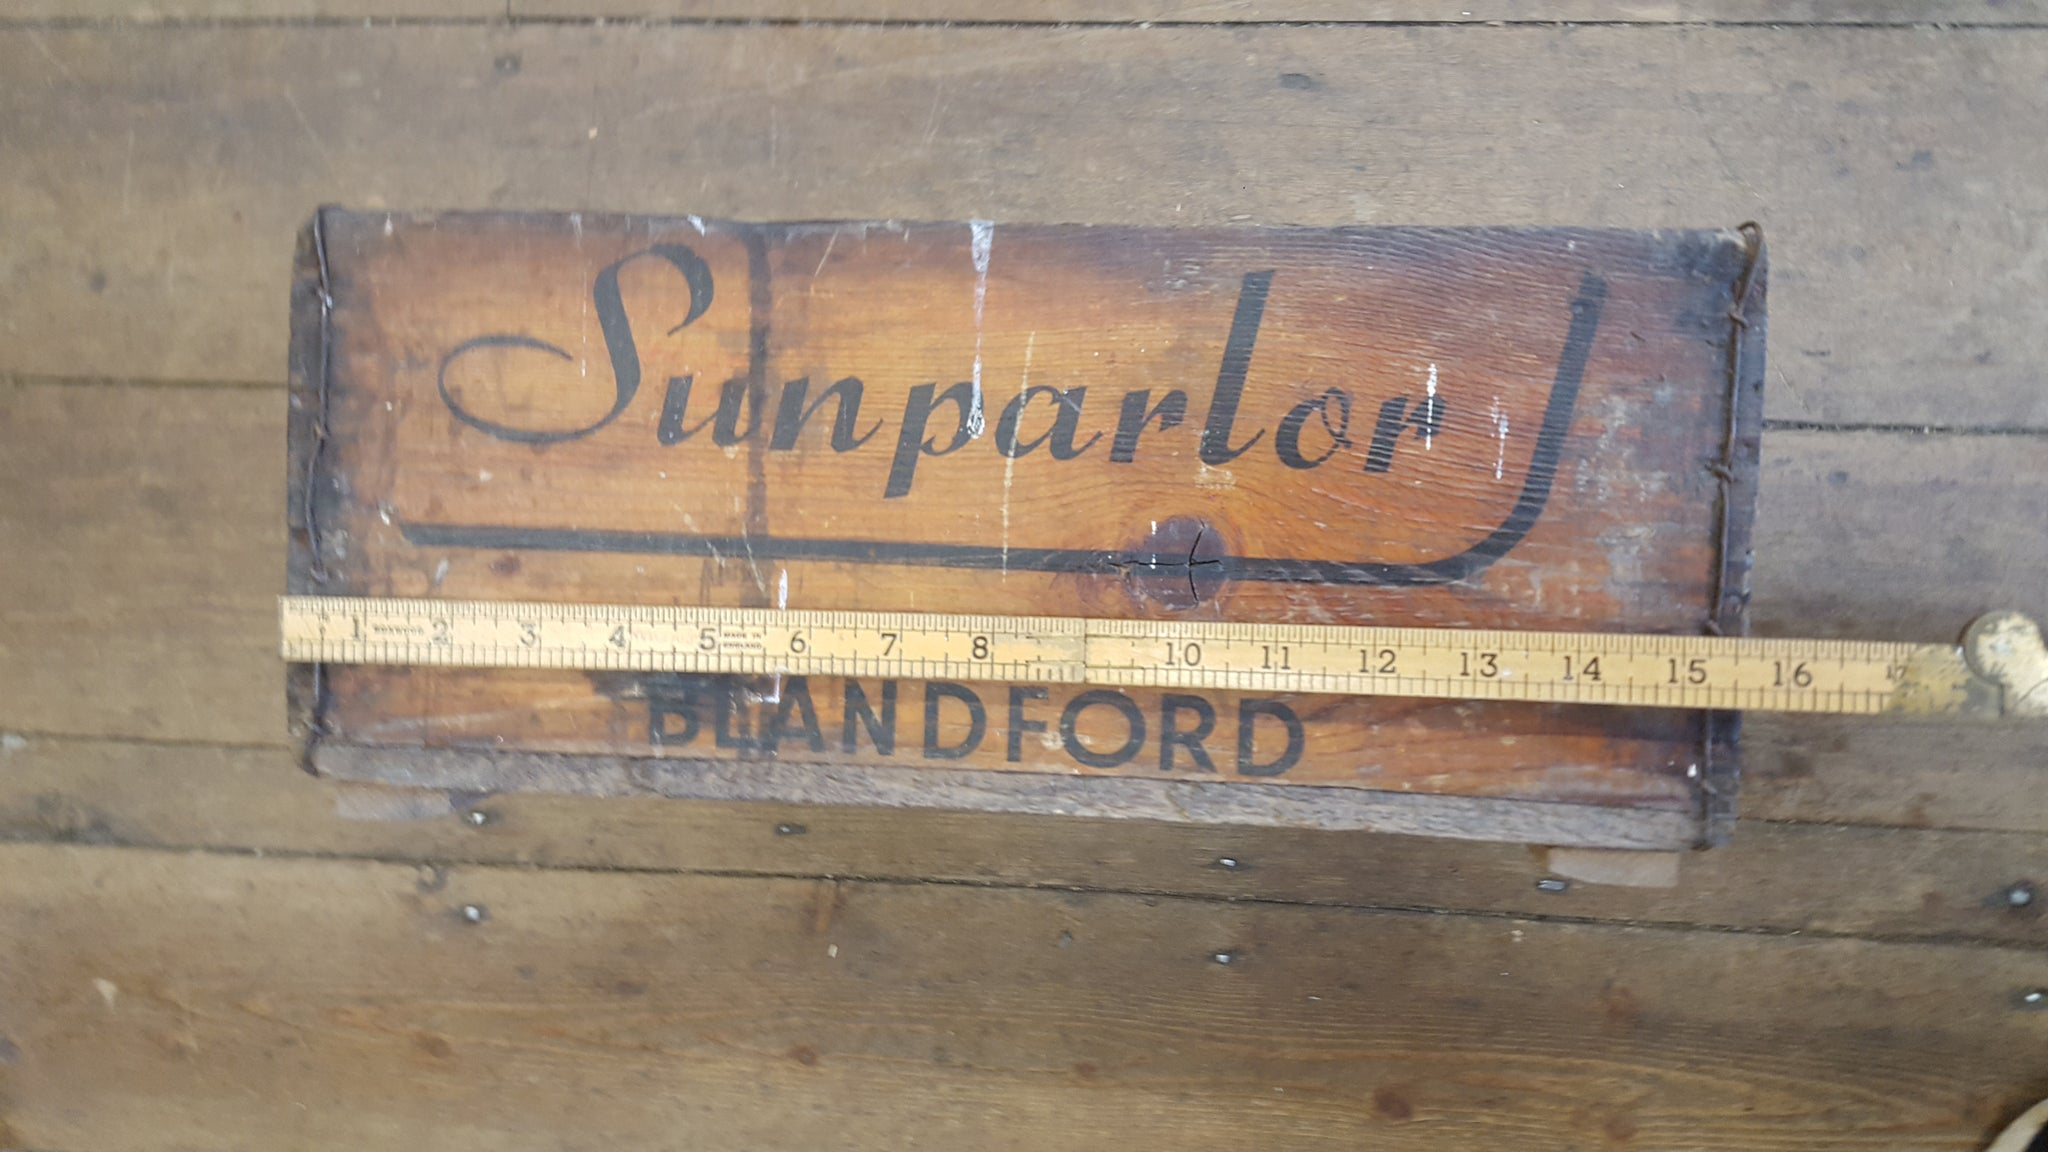 Antique Sunparlor Blandford Wooden Crate 28612